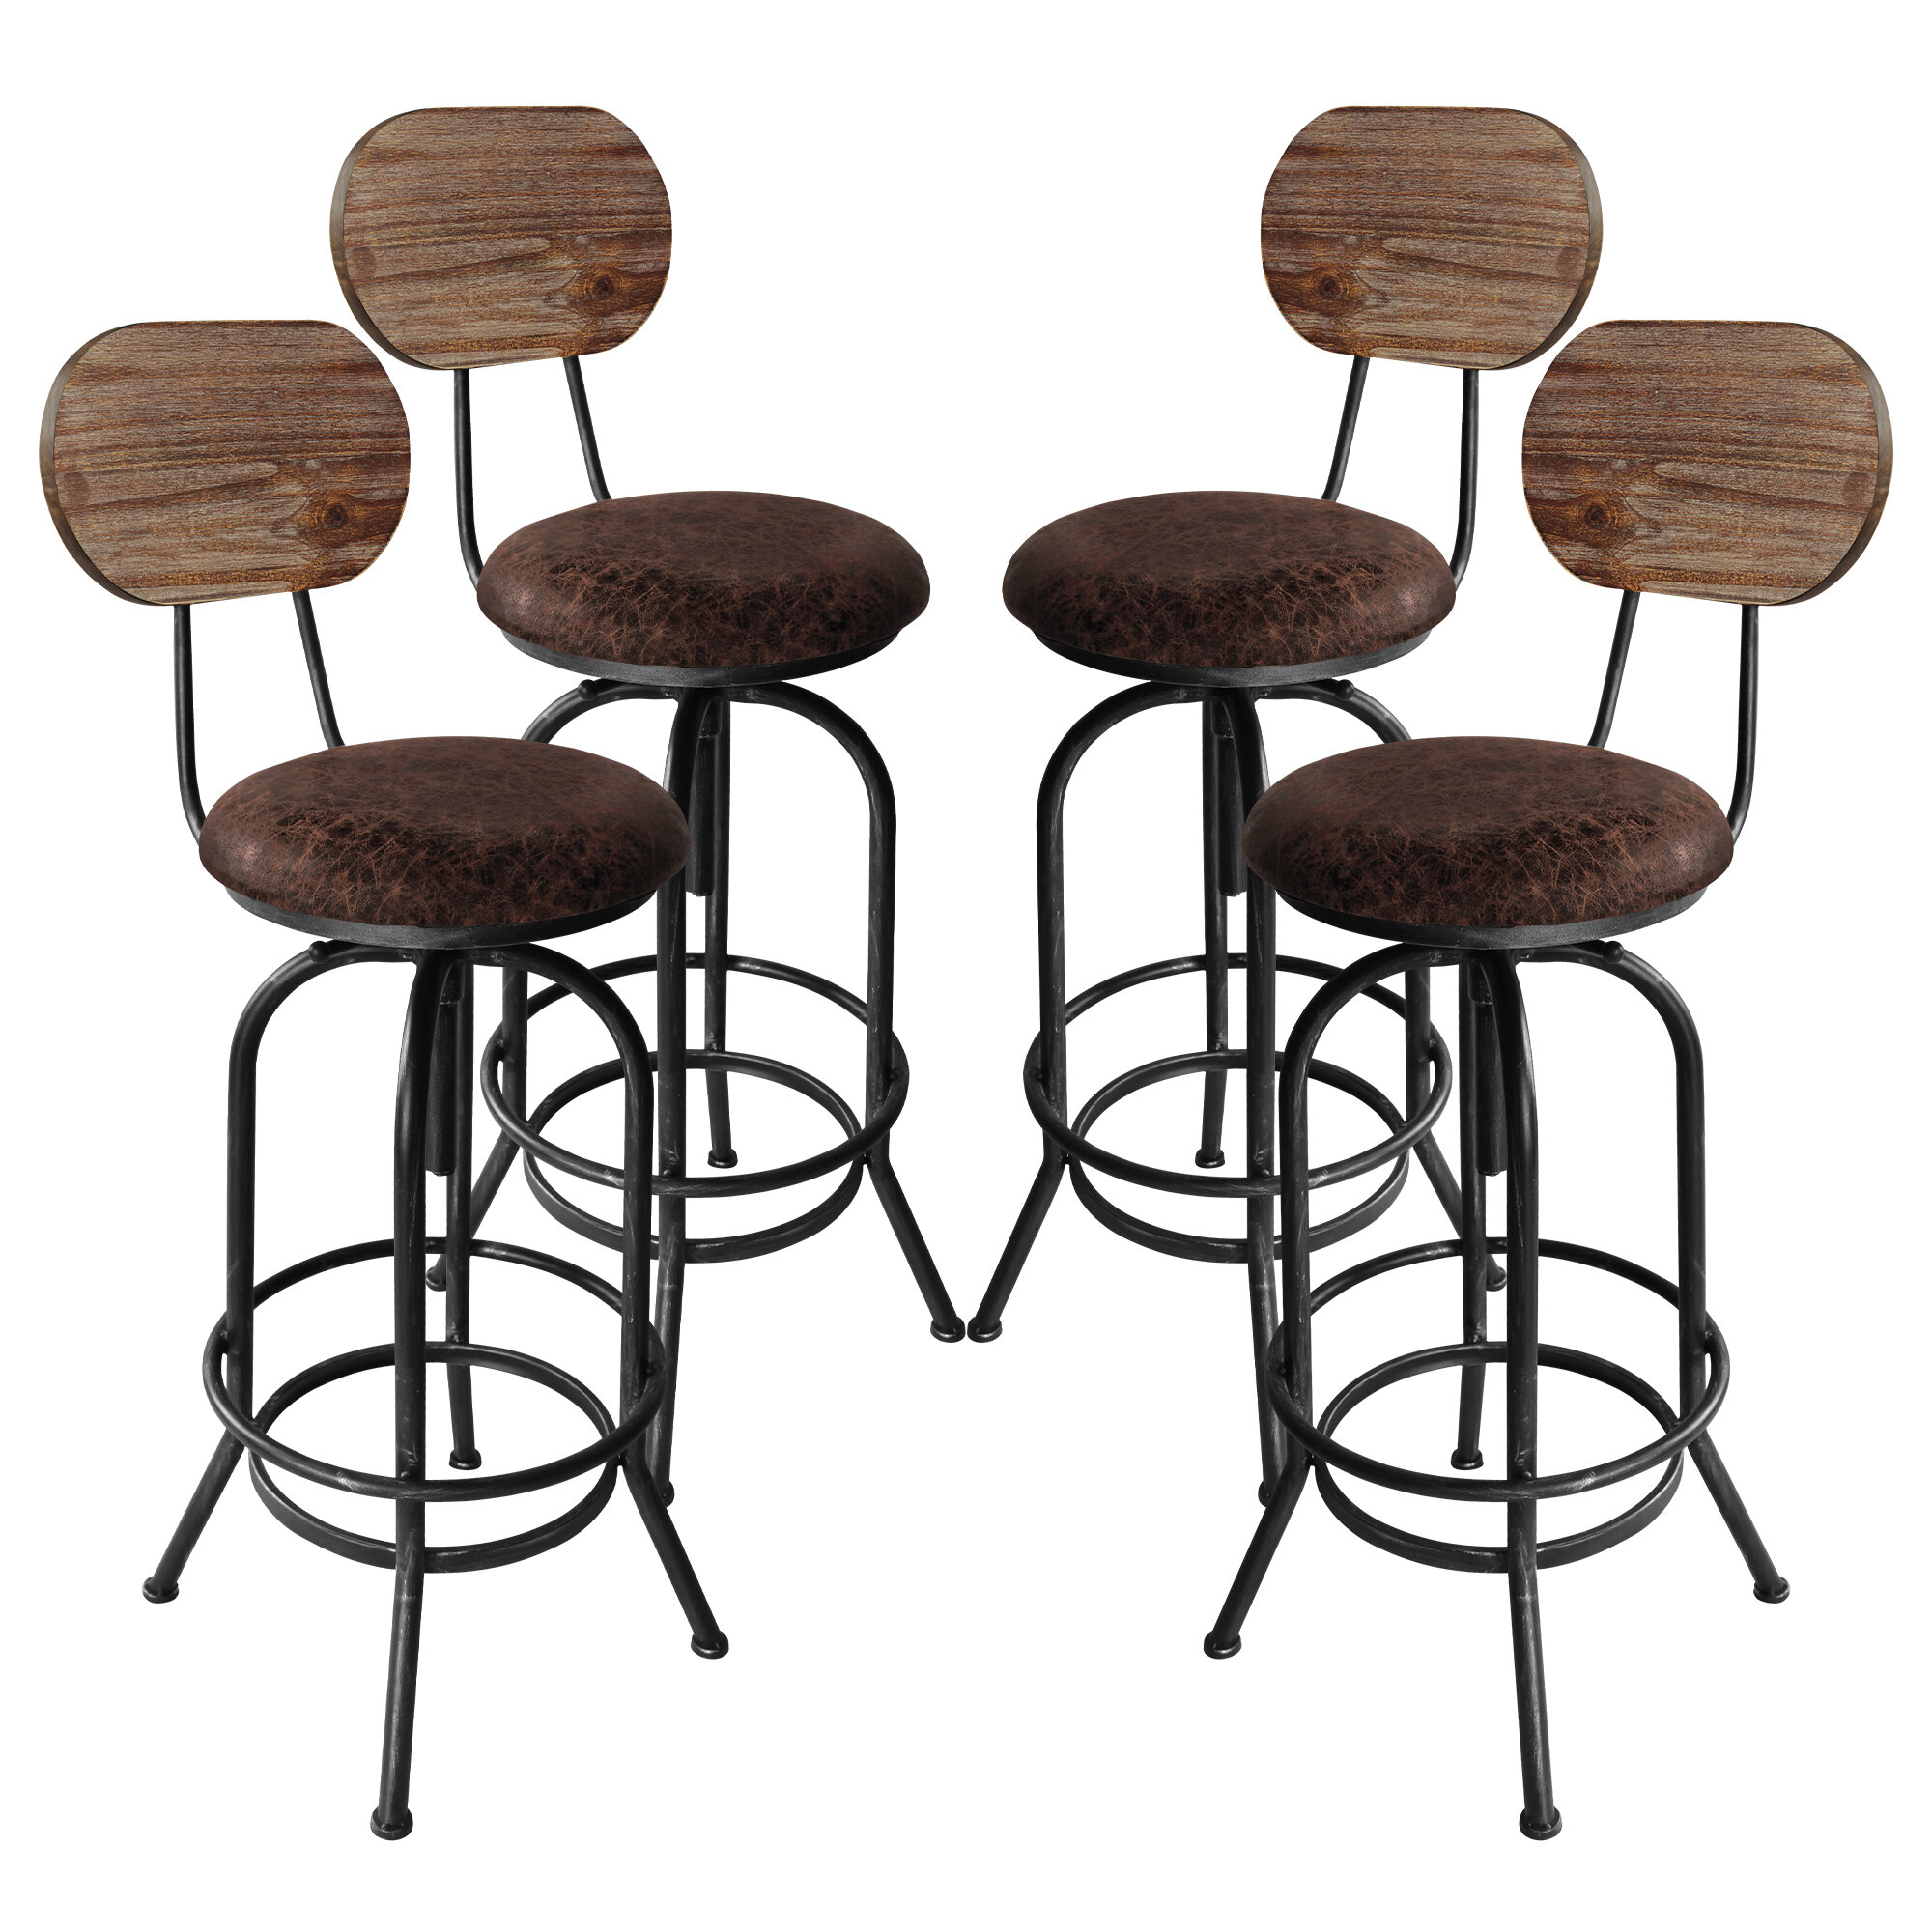 Poitras Adjustable Height Swivel Bar Stool - set of 8